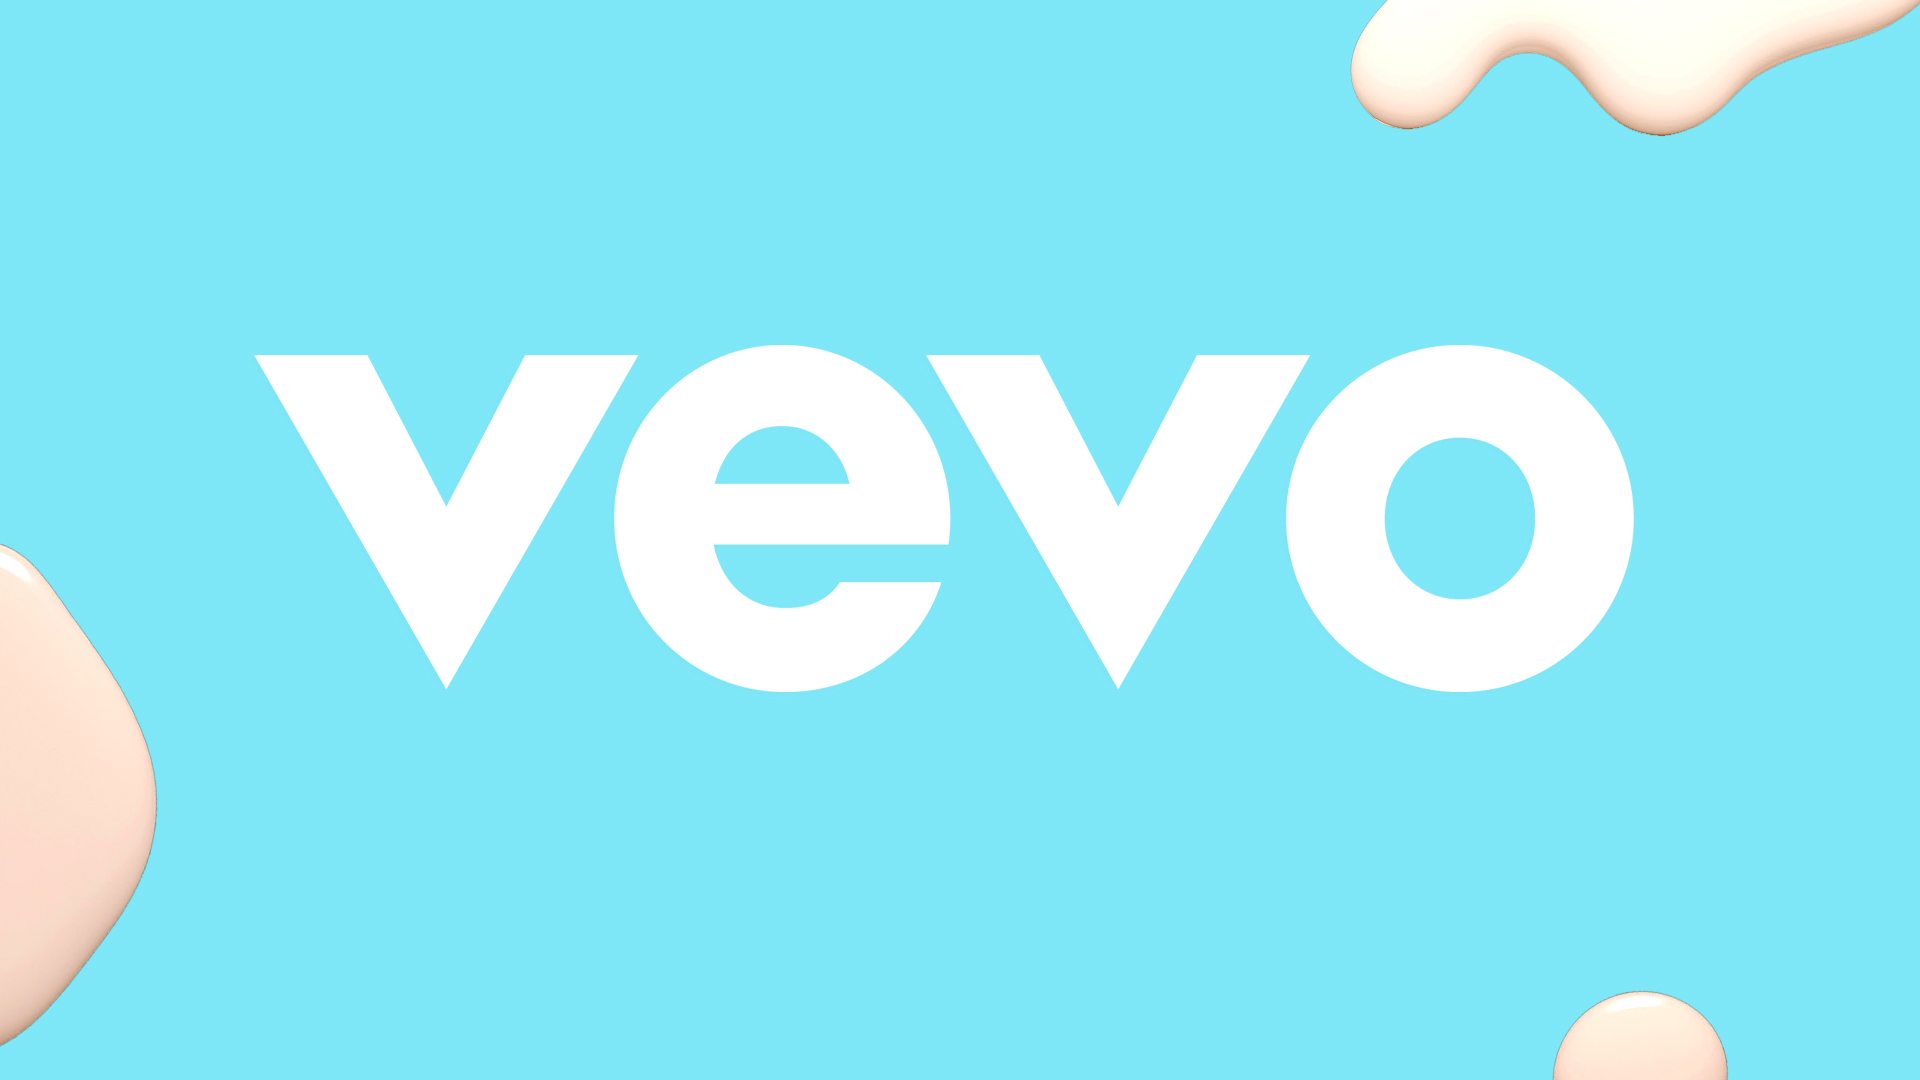 Vevo-Stickers-2.jpg